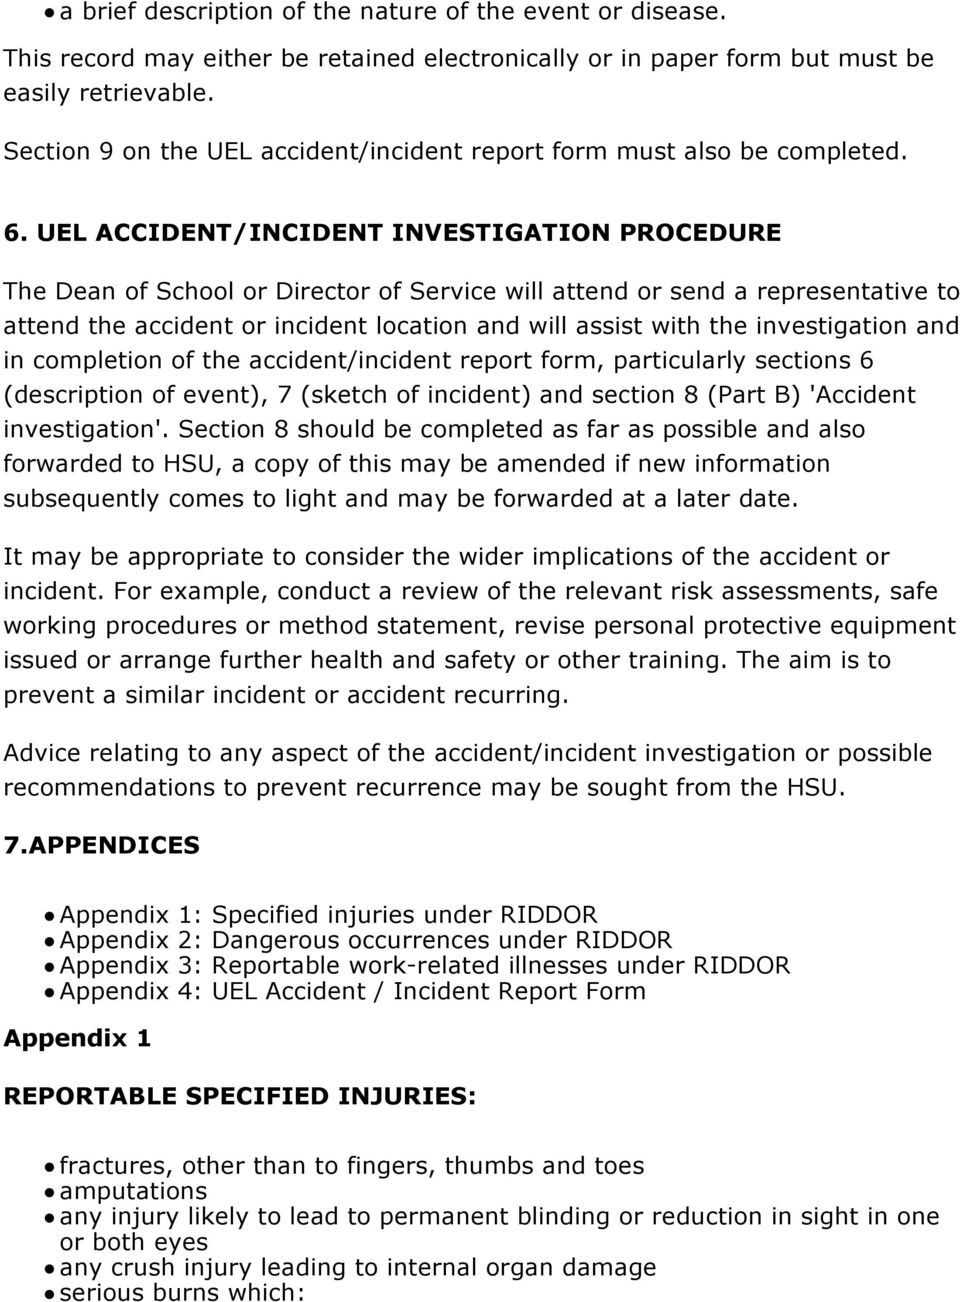 UEL ACCIDENT/INCIDENT INVESTIGATION PROCEDURE The Dean of School or Director of Service will attend or send a representative to attend the accident or incident location and will assist with the